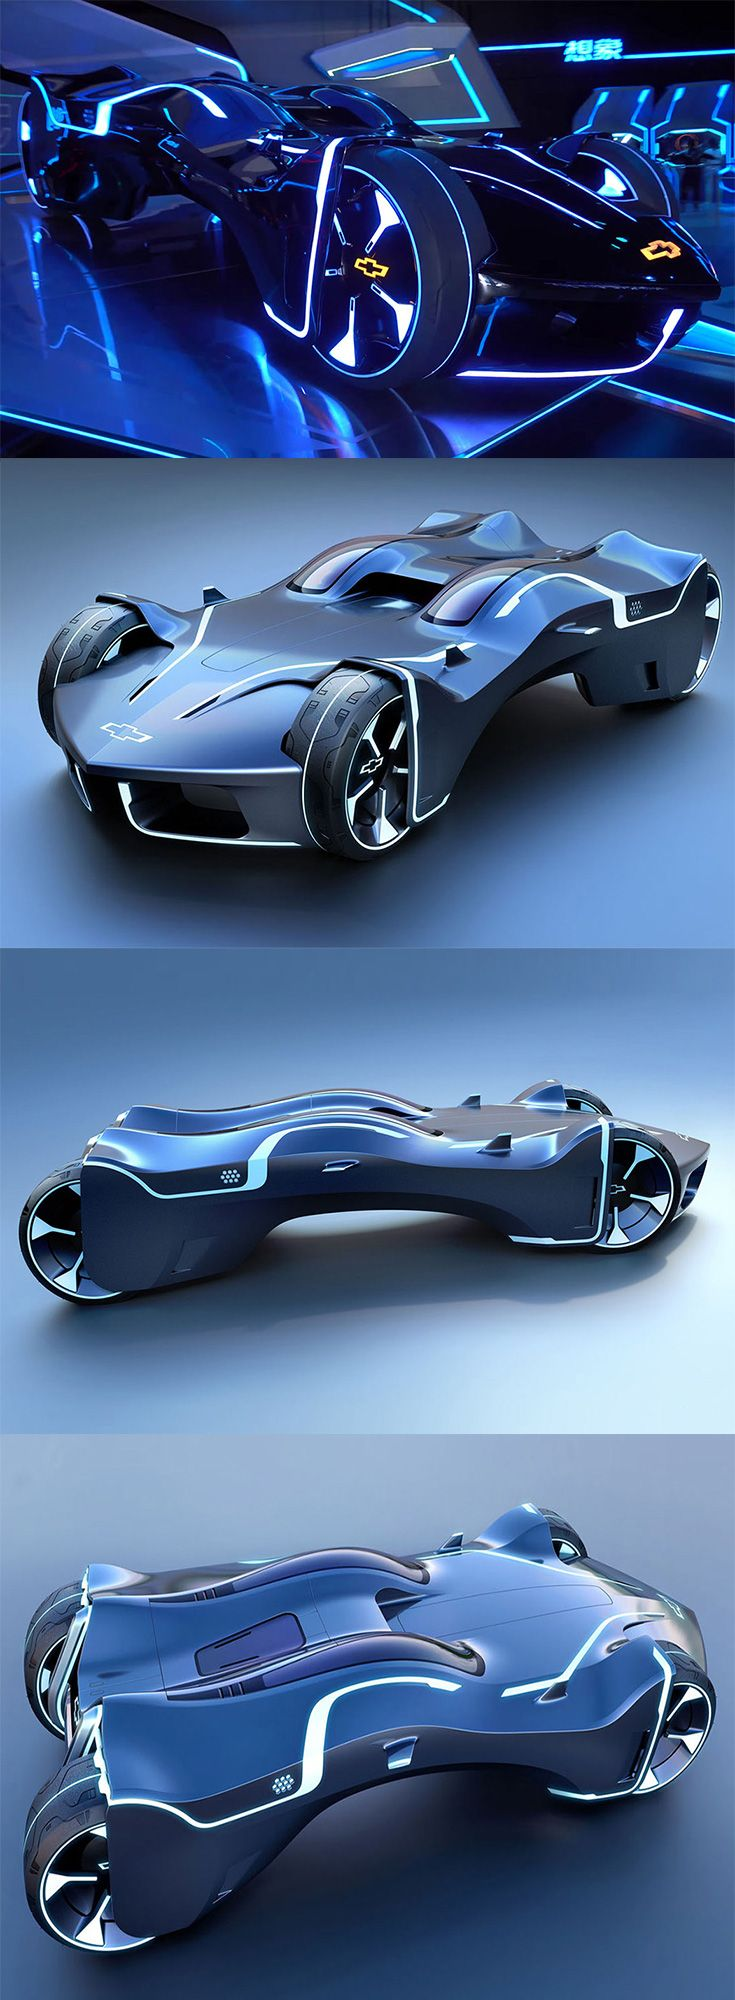 This design is a distillation of the perfect essence of Tron and Chevy in one ma…